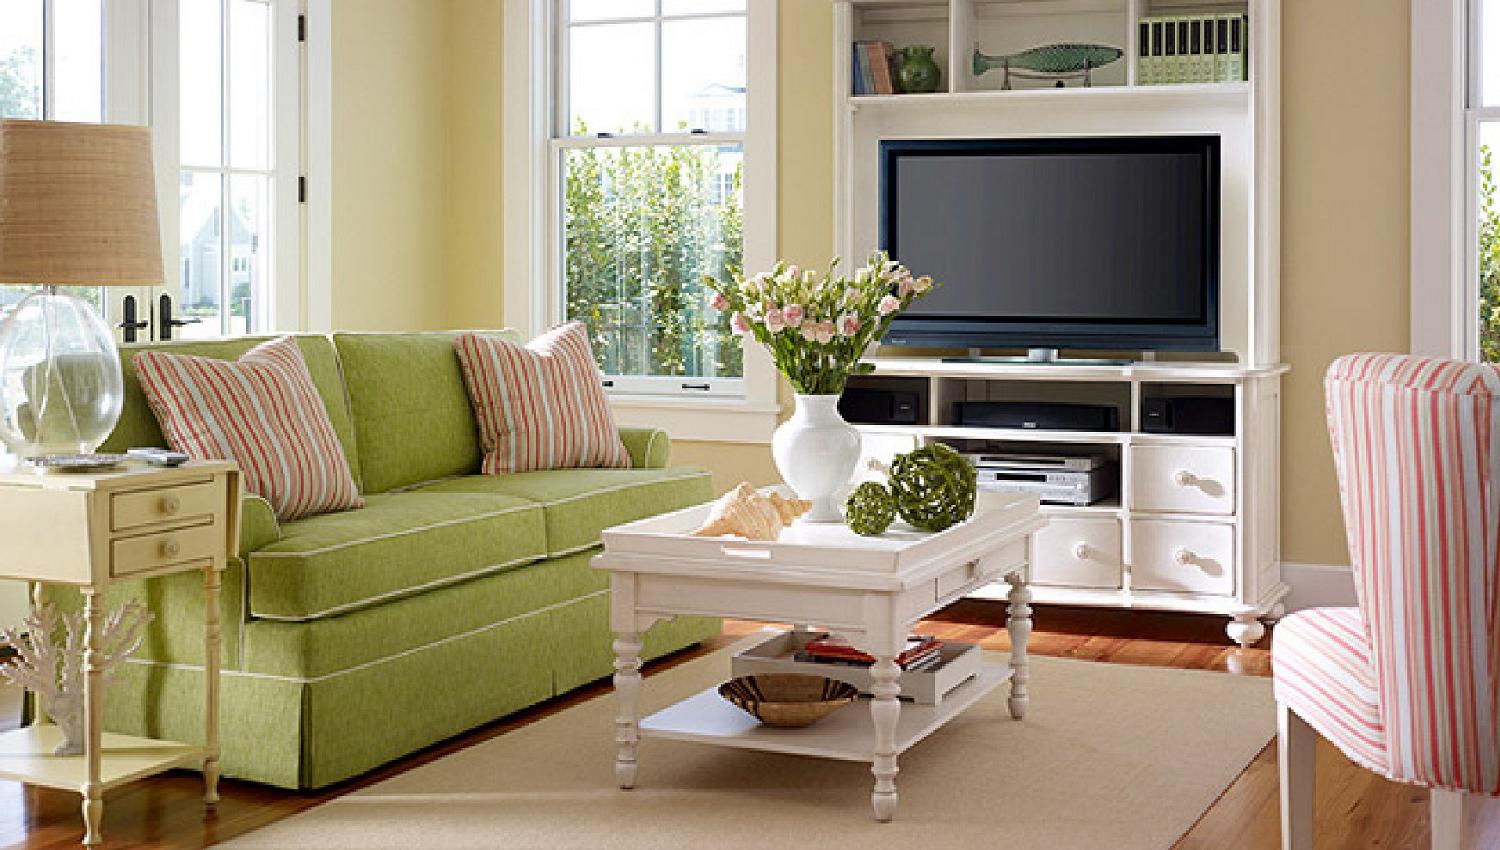 decorating best rooms com family ideas living designer room designs housebeautiful